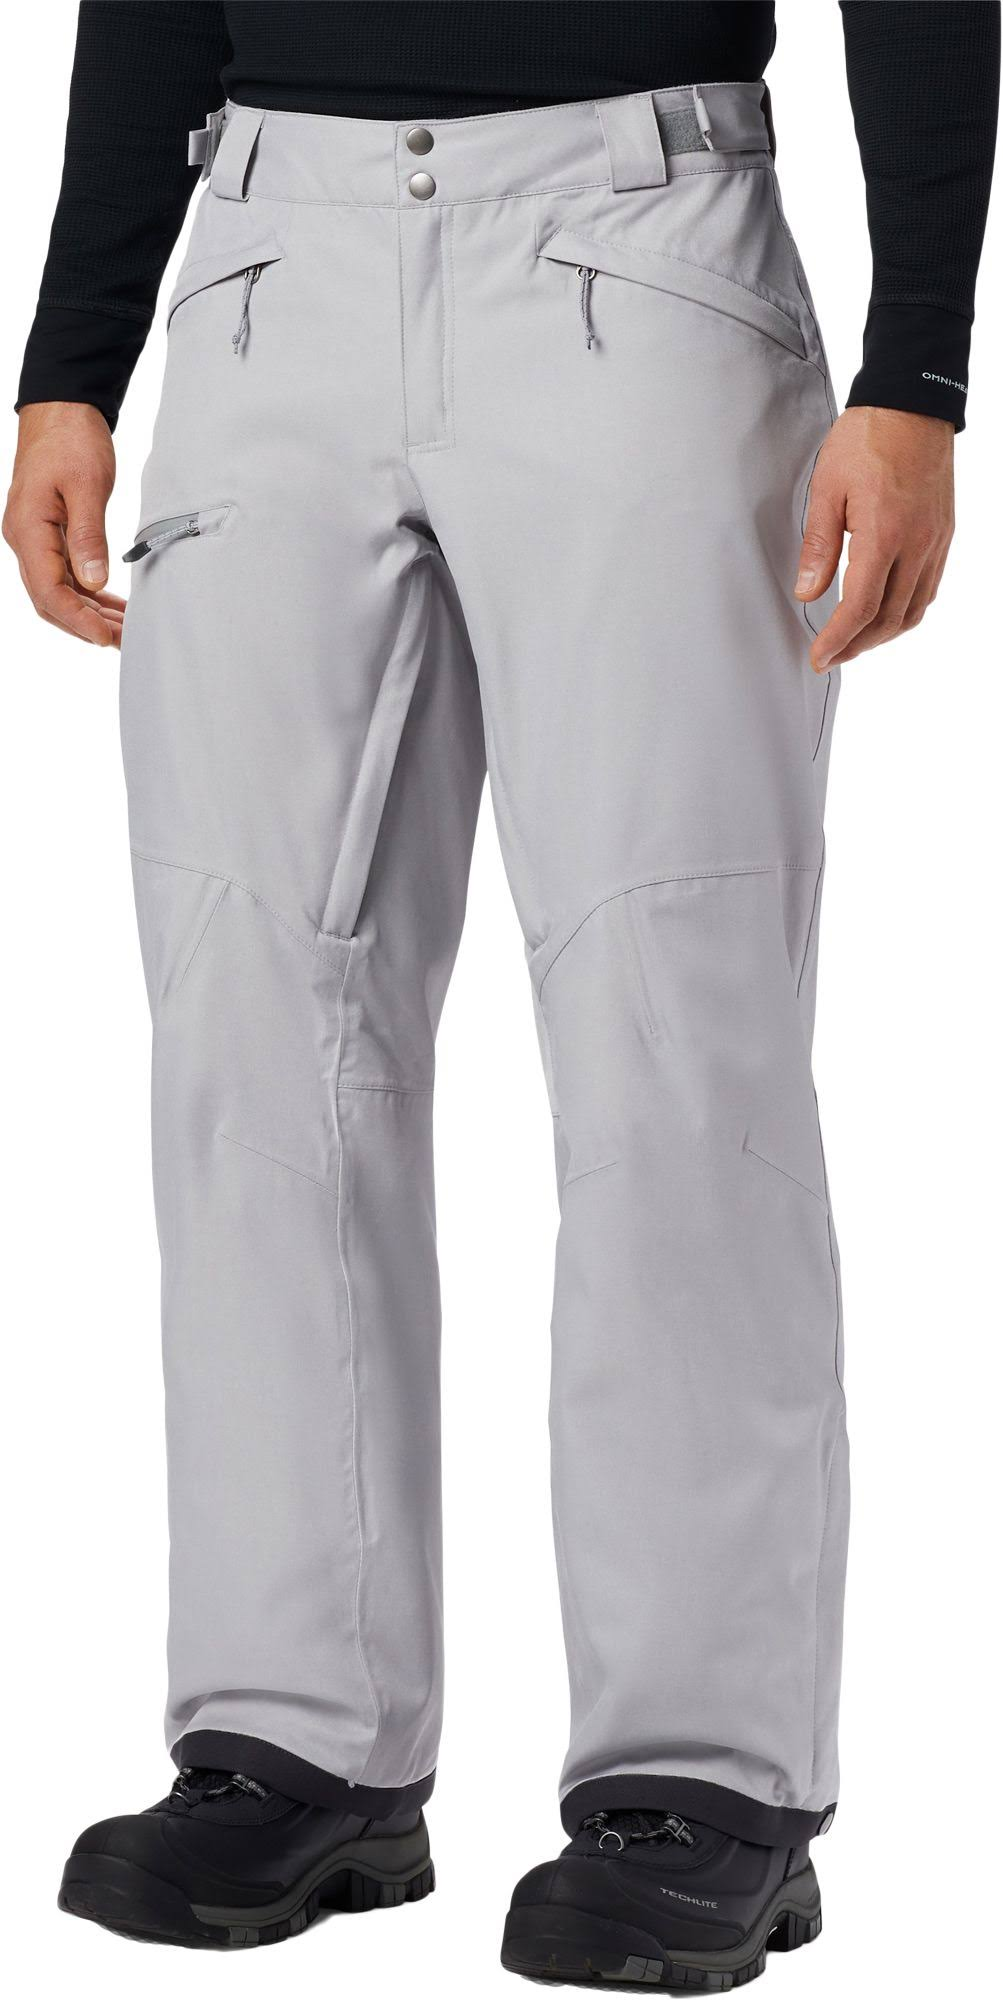 Columbia Men's CUSHMAN Crest Pants 31.5 inch, Size: 2XL, Gray